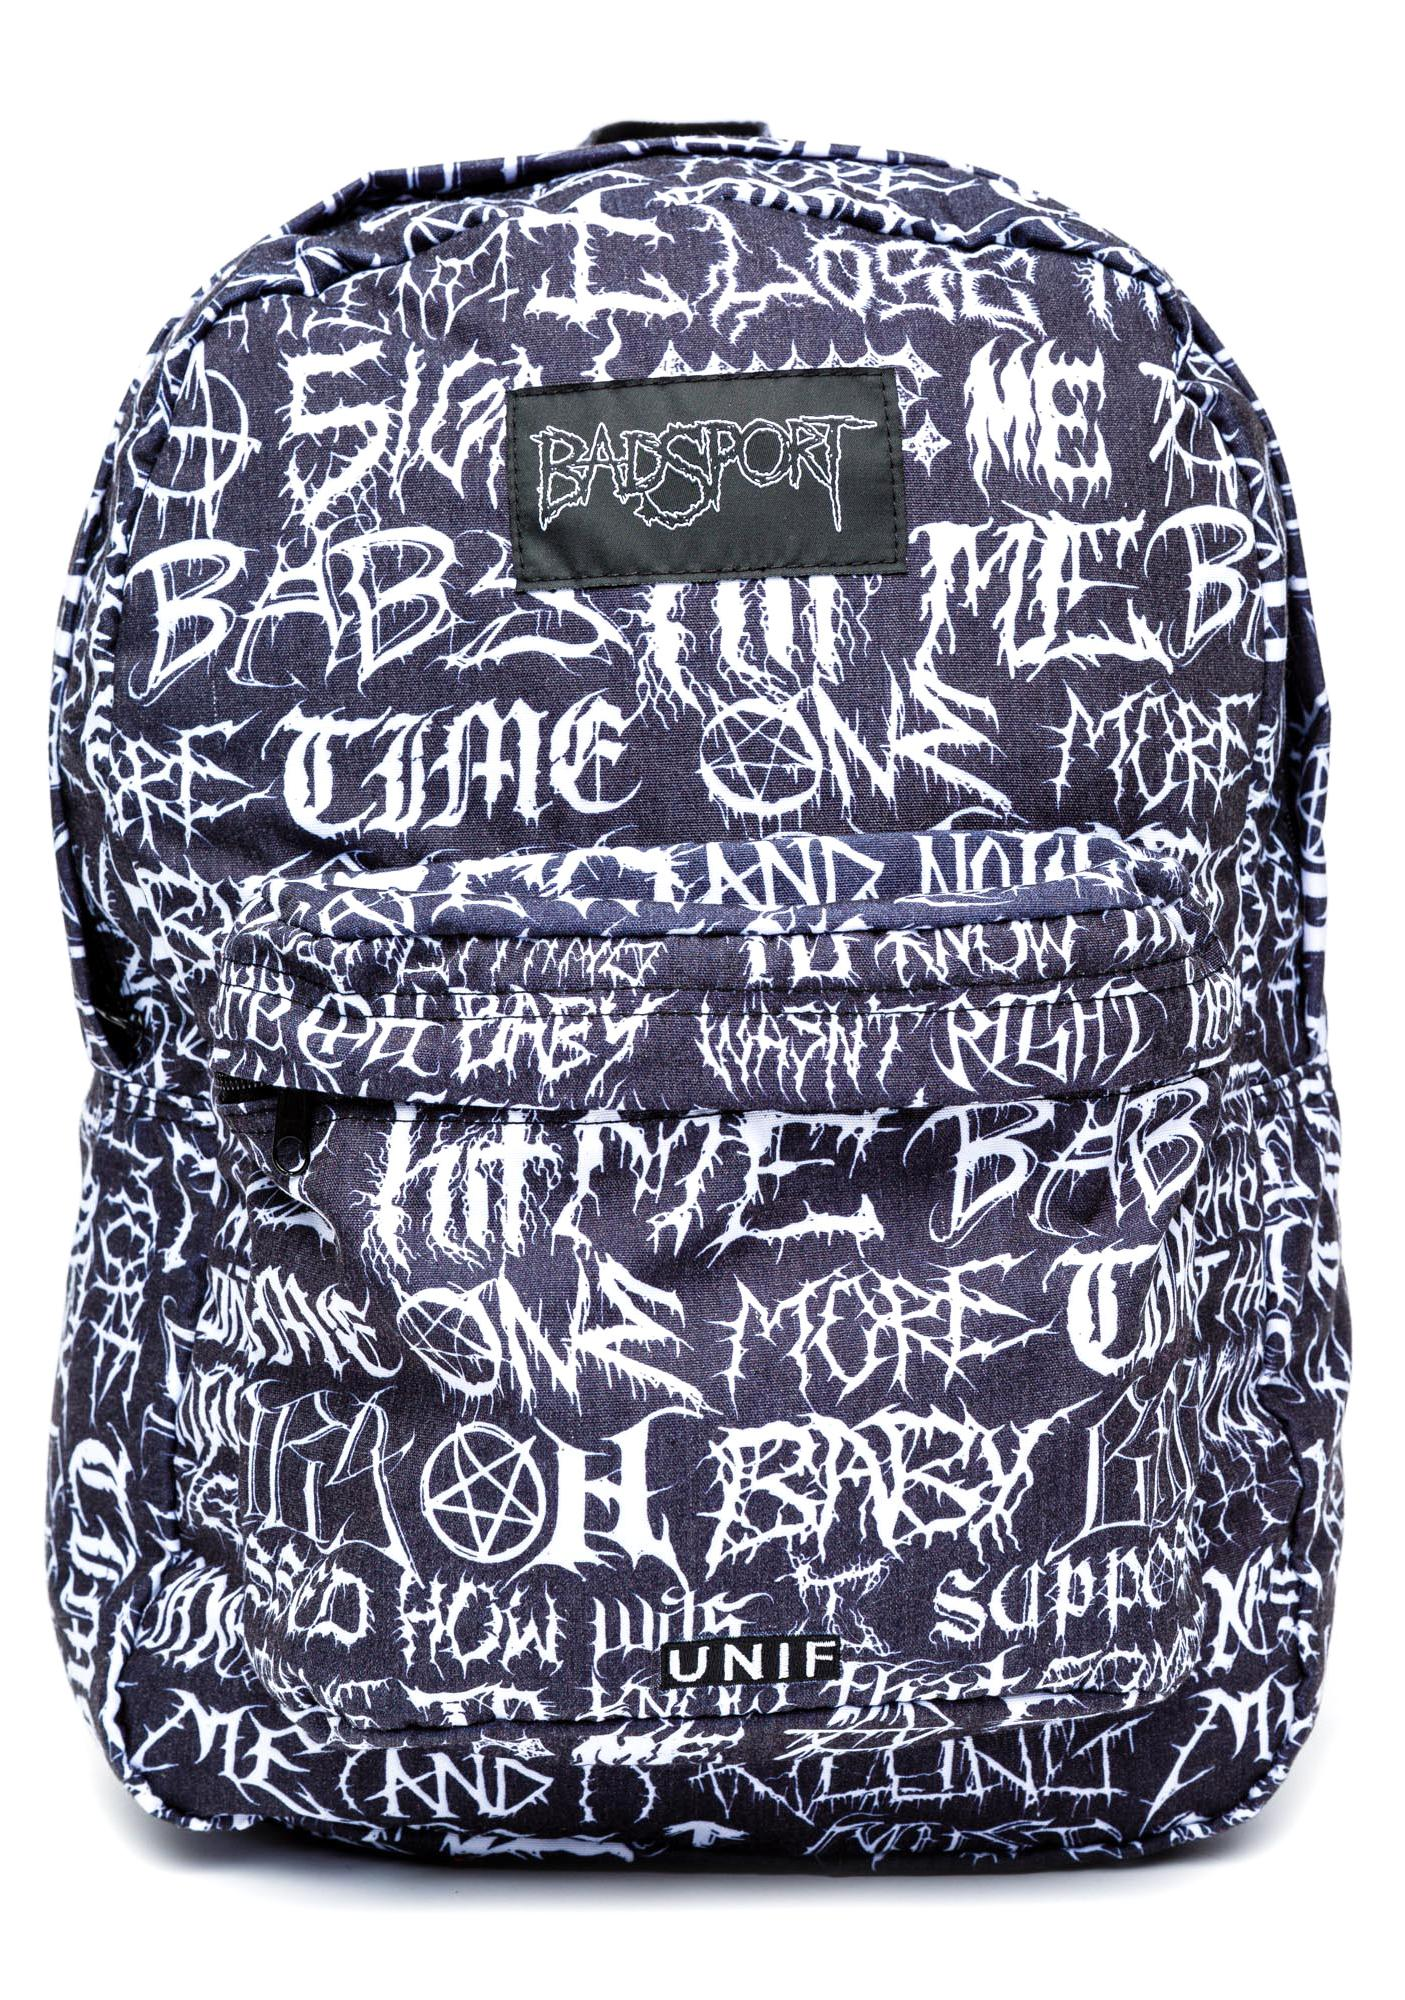 UNIF Badsport Backpack